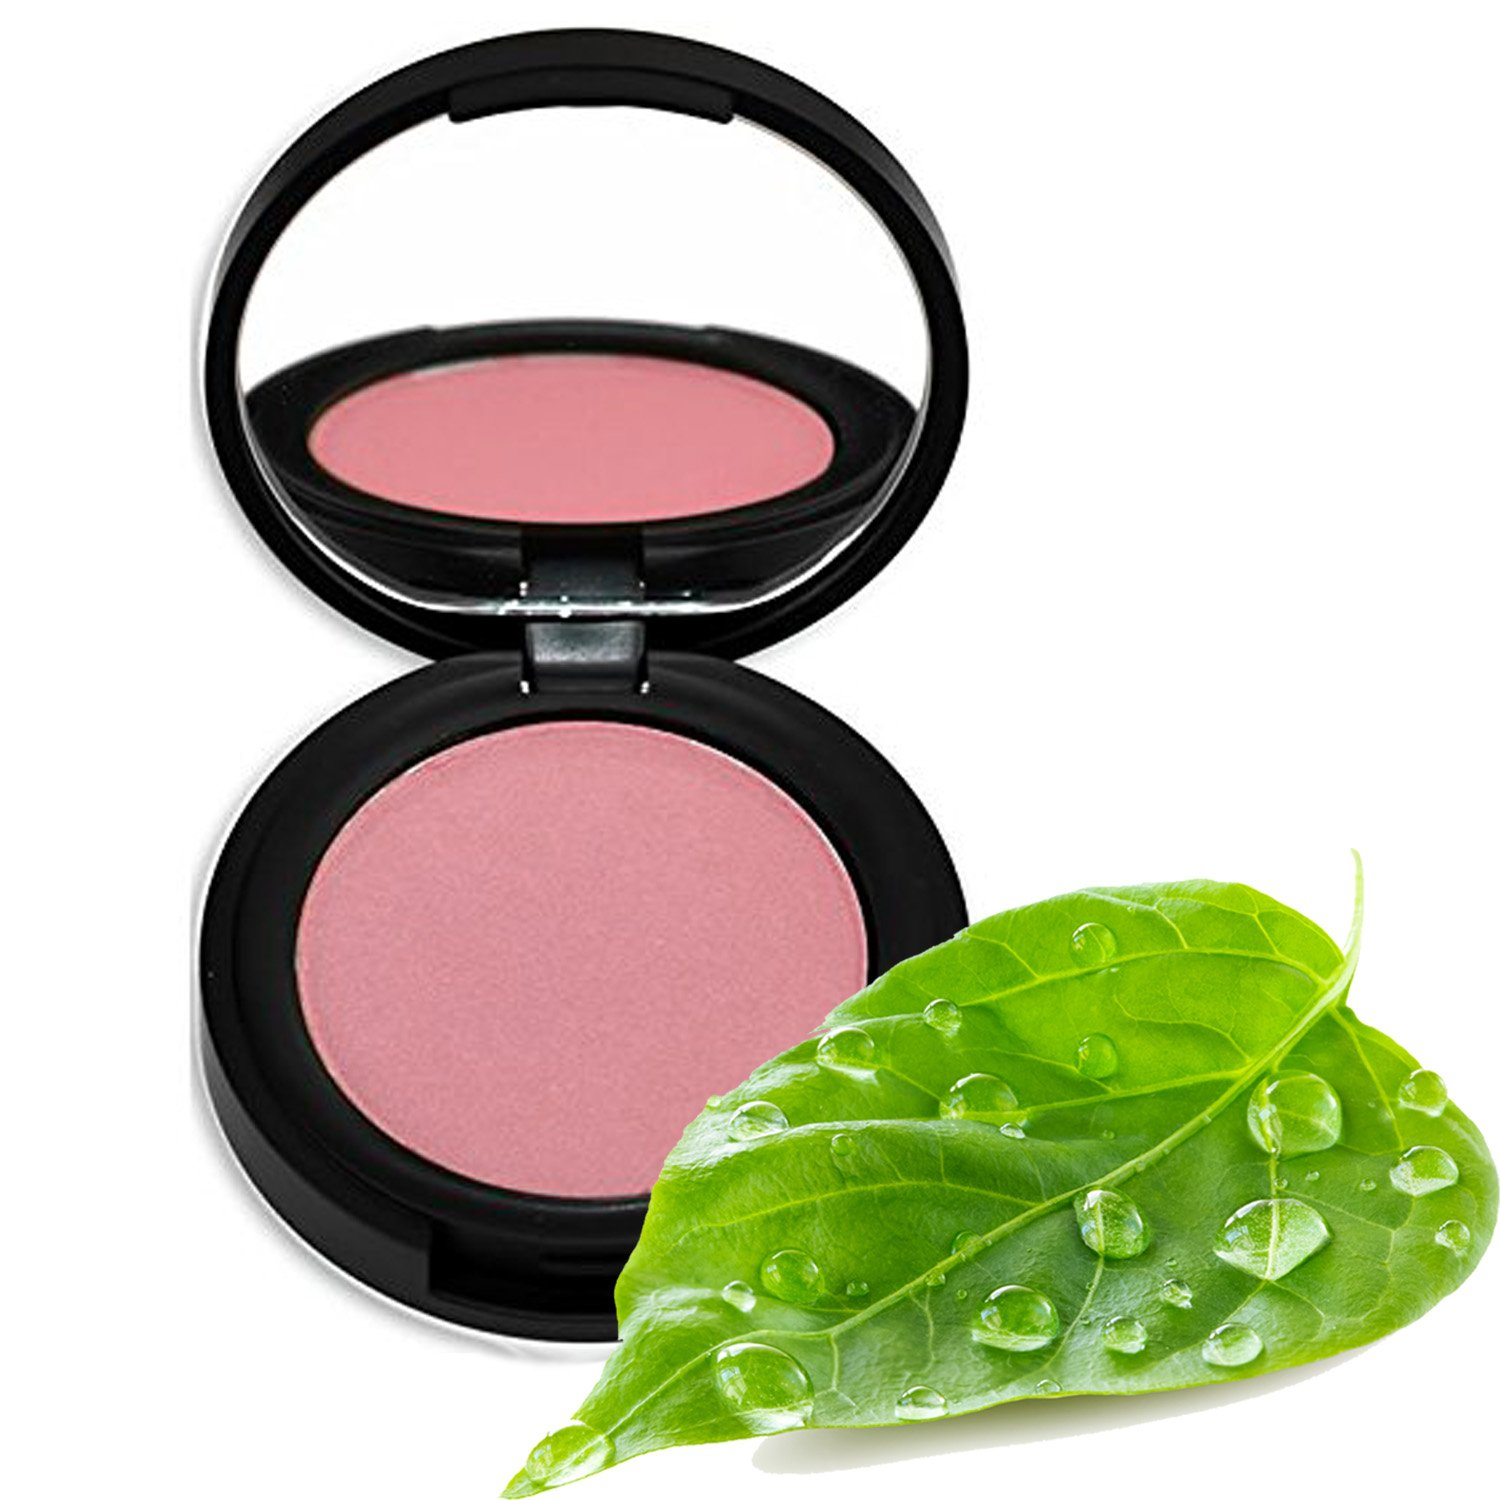 Better'n Ur Cheeks Mineral Blush (PETAL) - Organic Botanicals & Minerals - Cruelty Free - Talc Free - Silky - Long Lasting - Made in USA